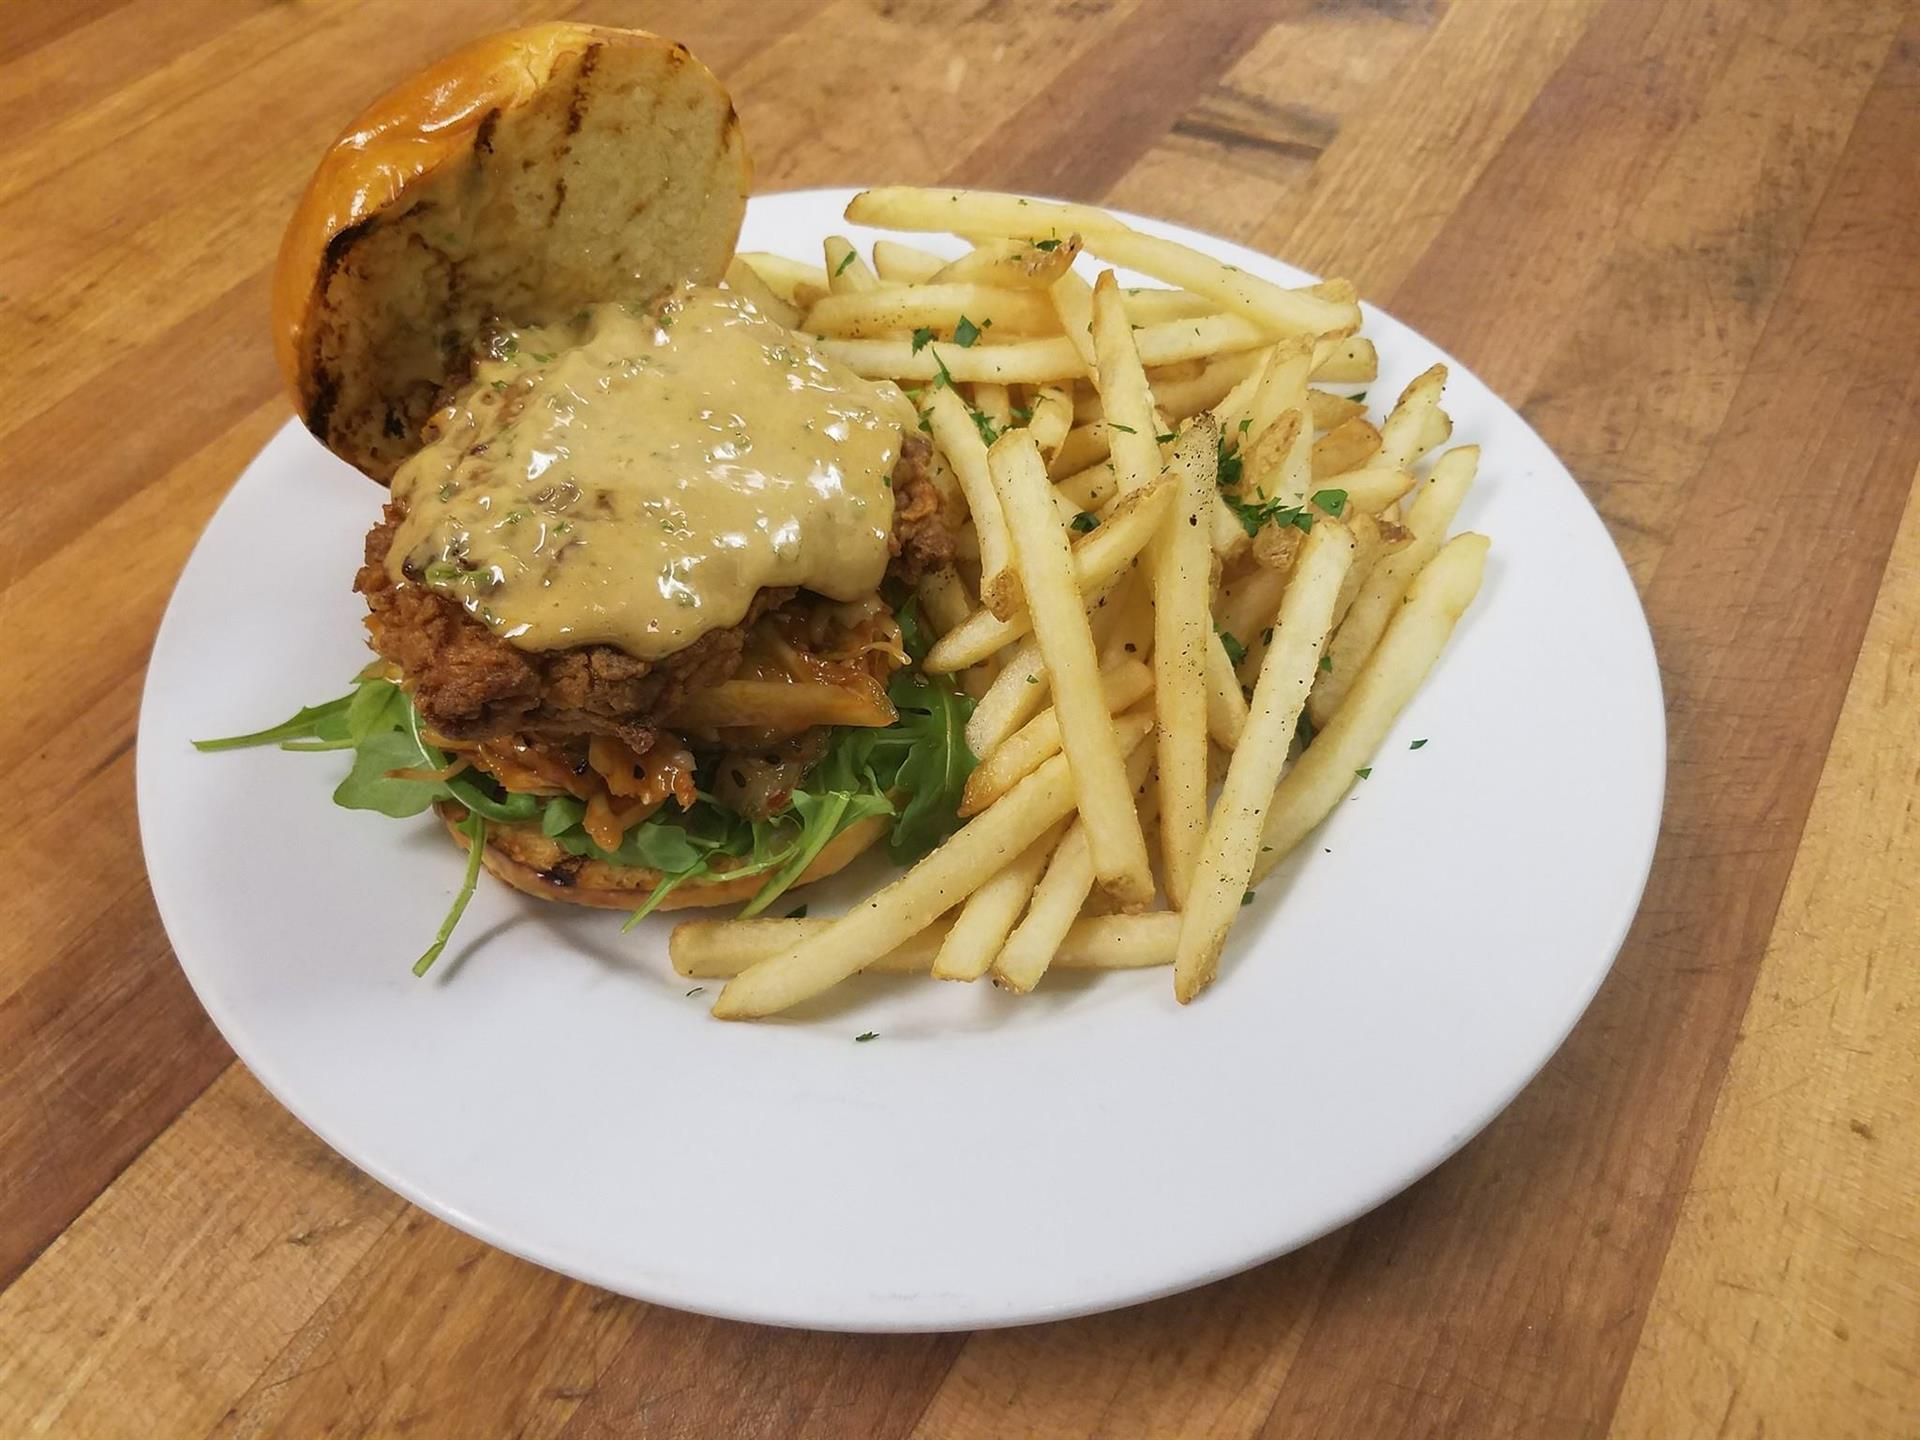 Asian Fried Chicken Sandwich With Arugula, House Kimchi, Sweet Ginger Soy Aioli, on a Toasted Brioche Bun, served with French Fries